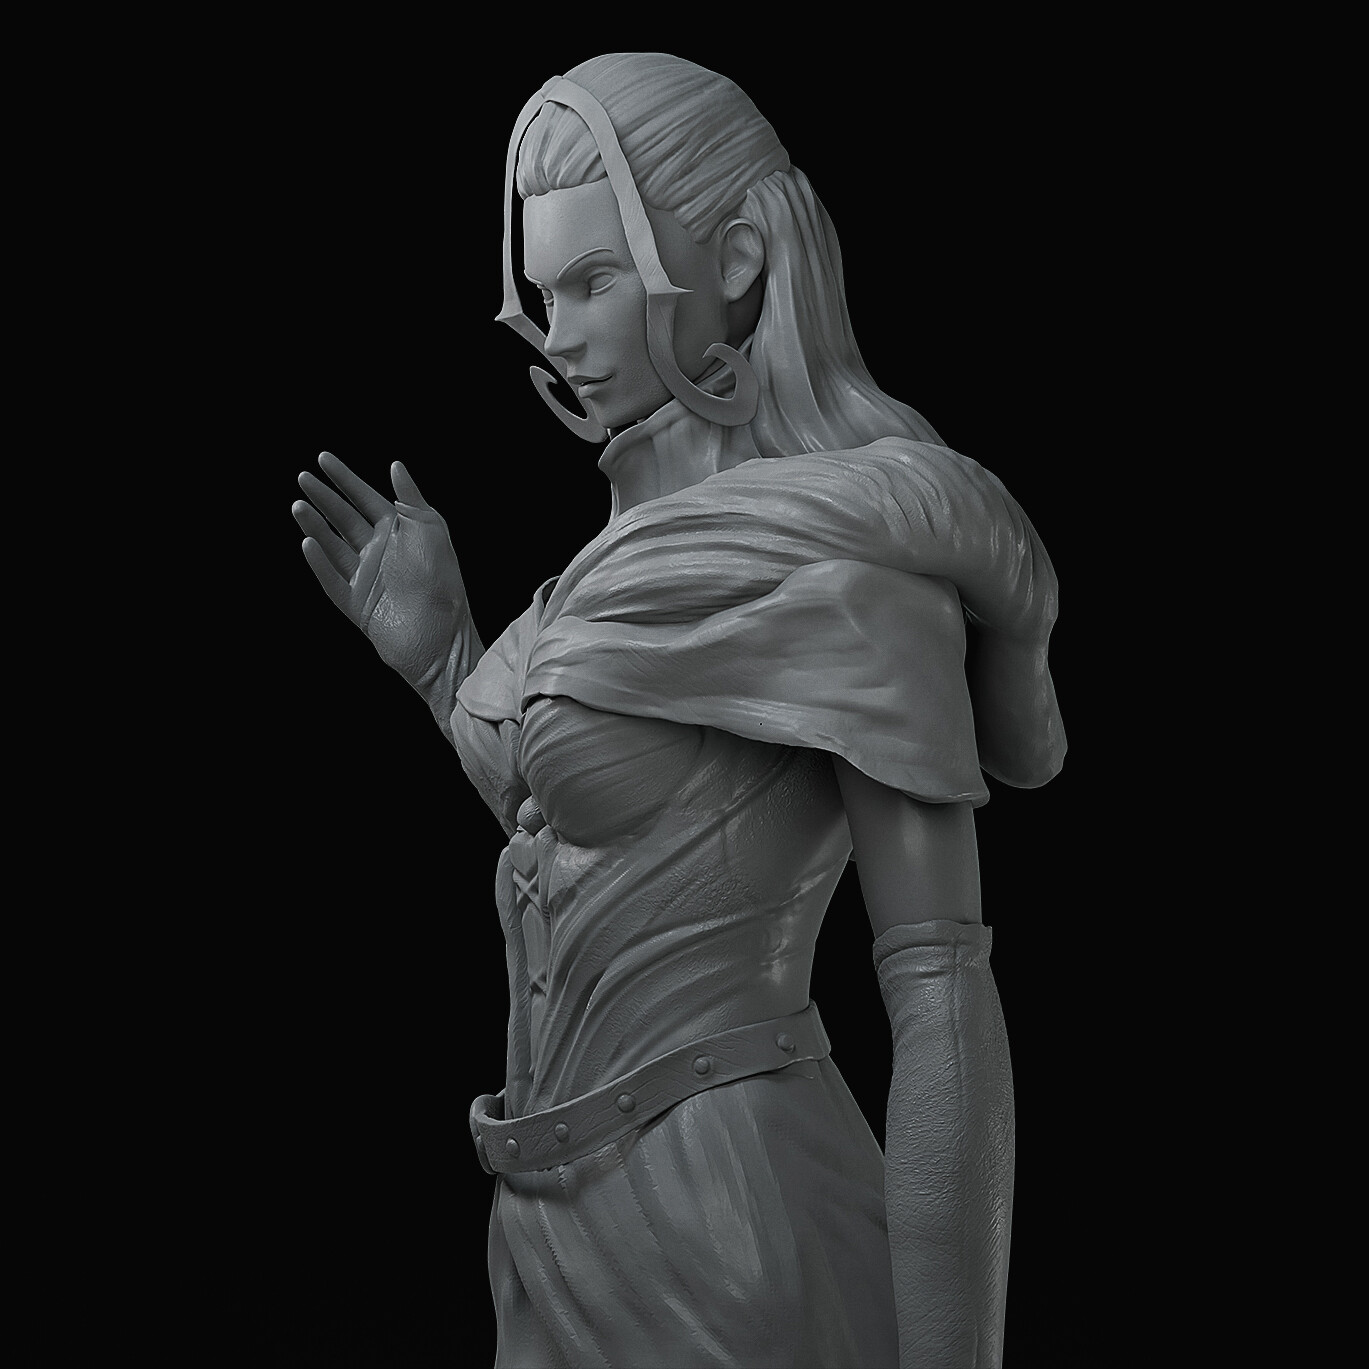 Day 1-4 Sculpting Study